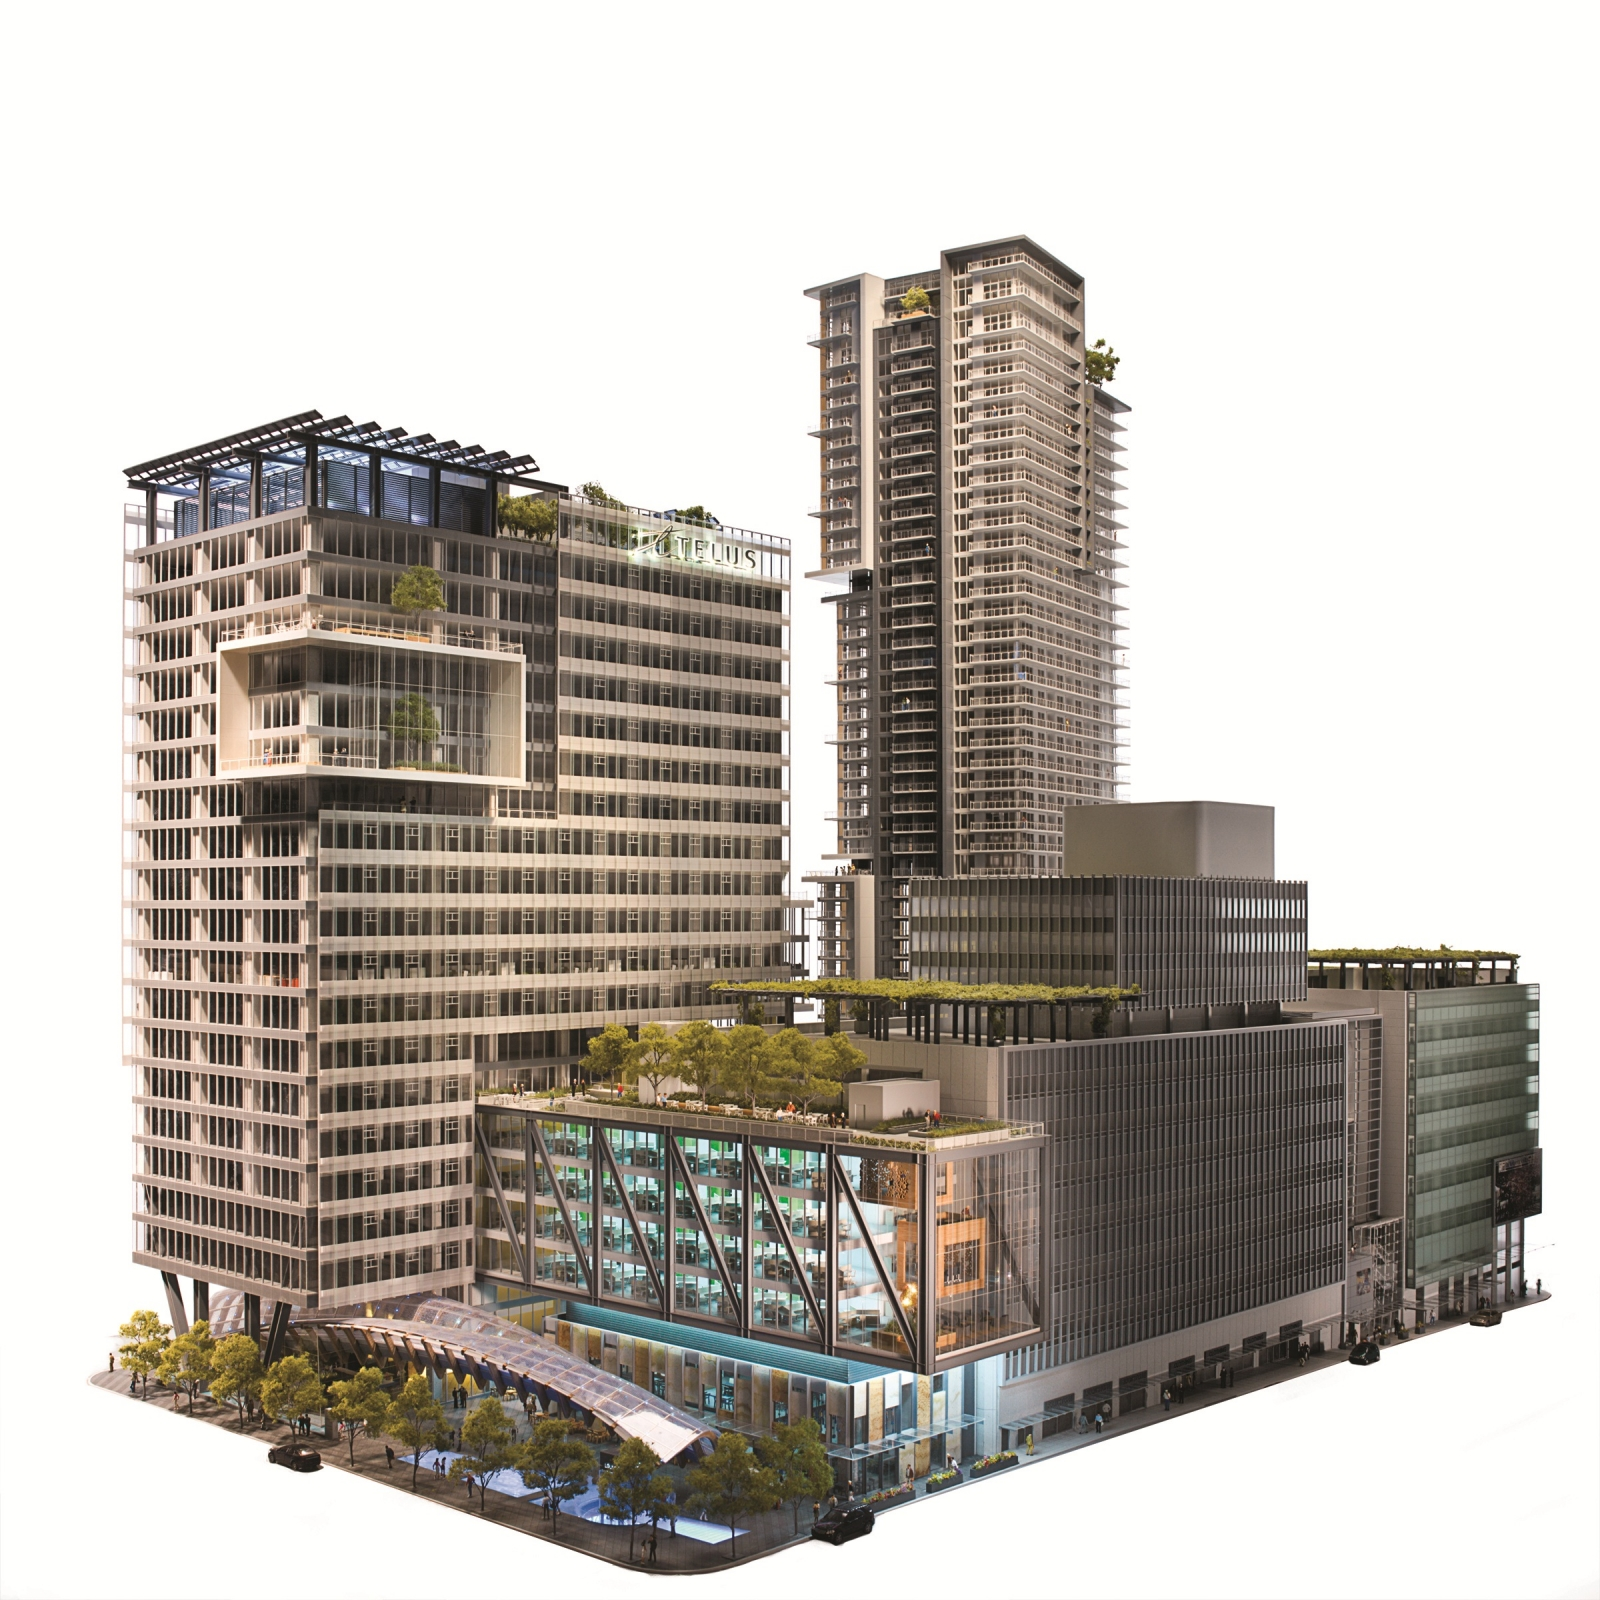 Telus plan for second-tallest tower in Vancouver now includes condominium units - Downtown Vancouver Real Estate News March 2012